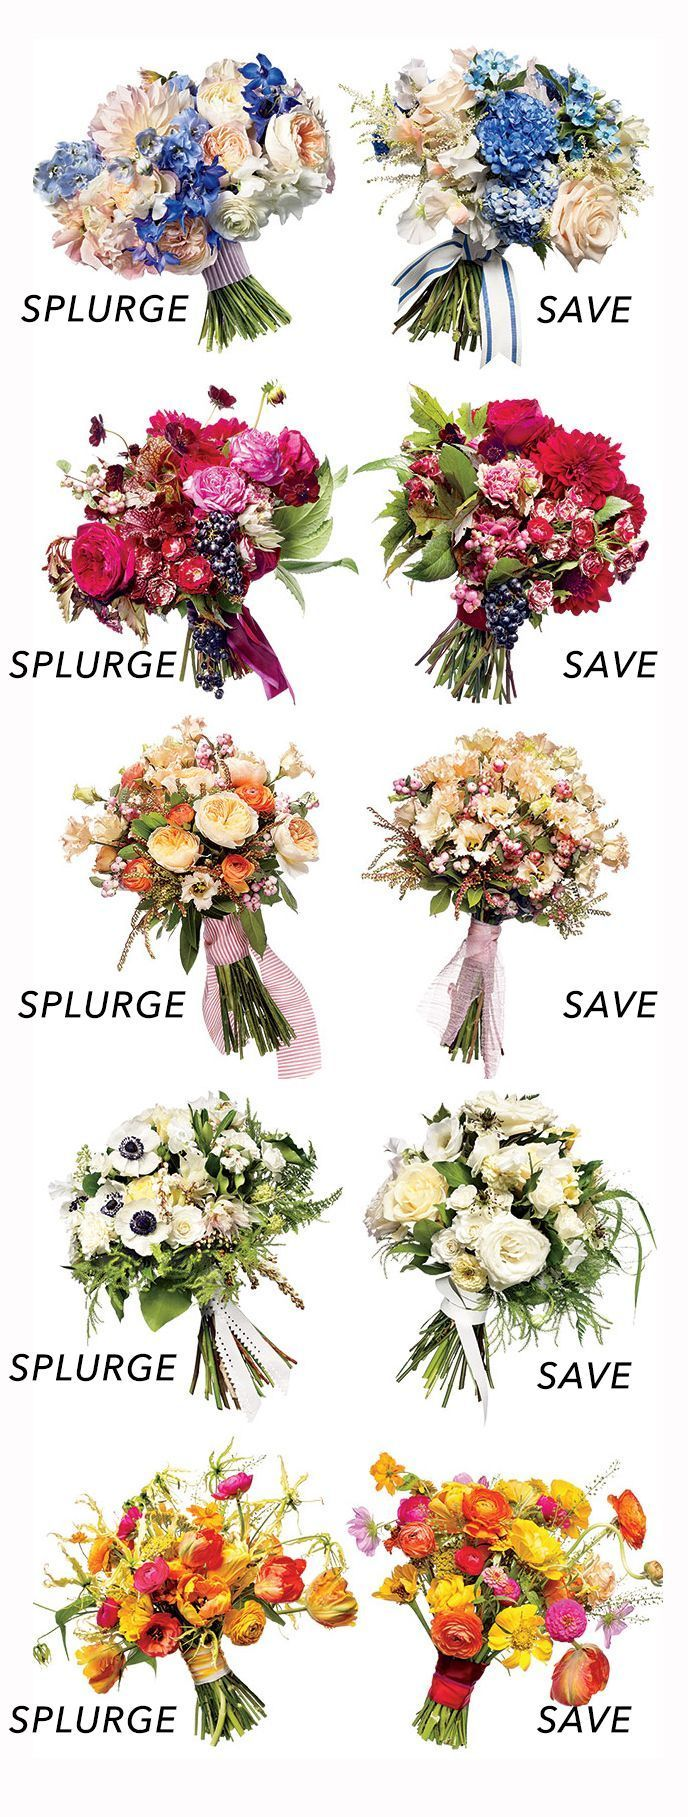 What makes one wedding bouquet more expensive than another? Save money on wedding flowers, bridal bouquets